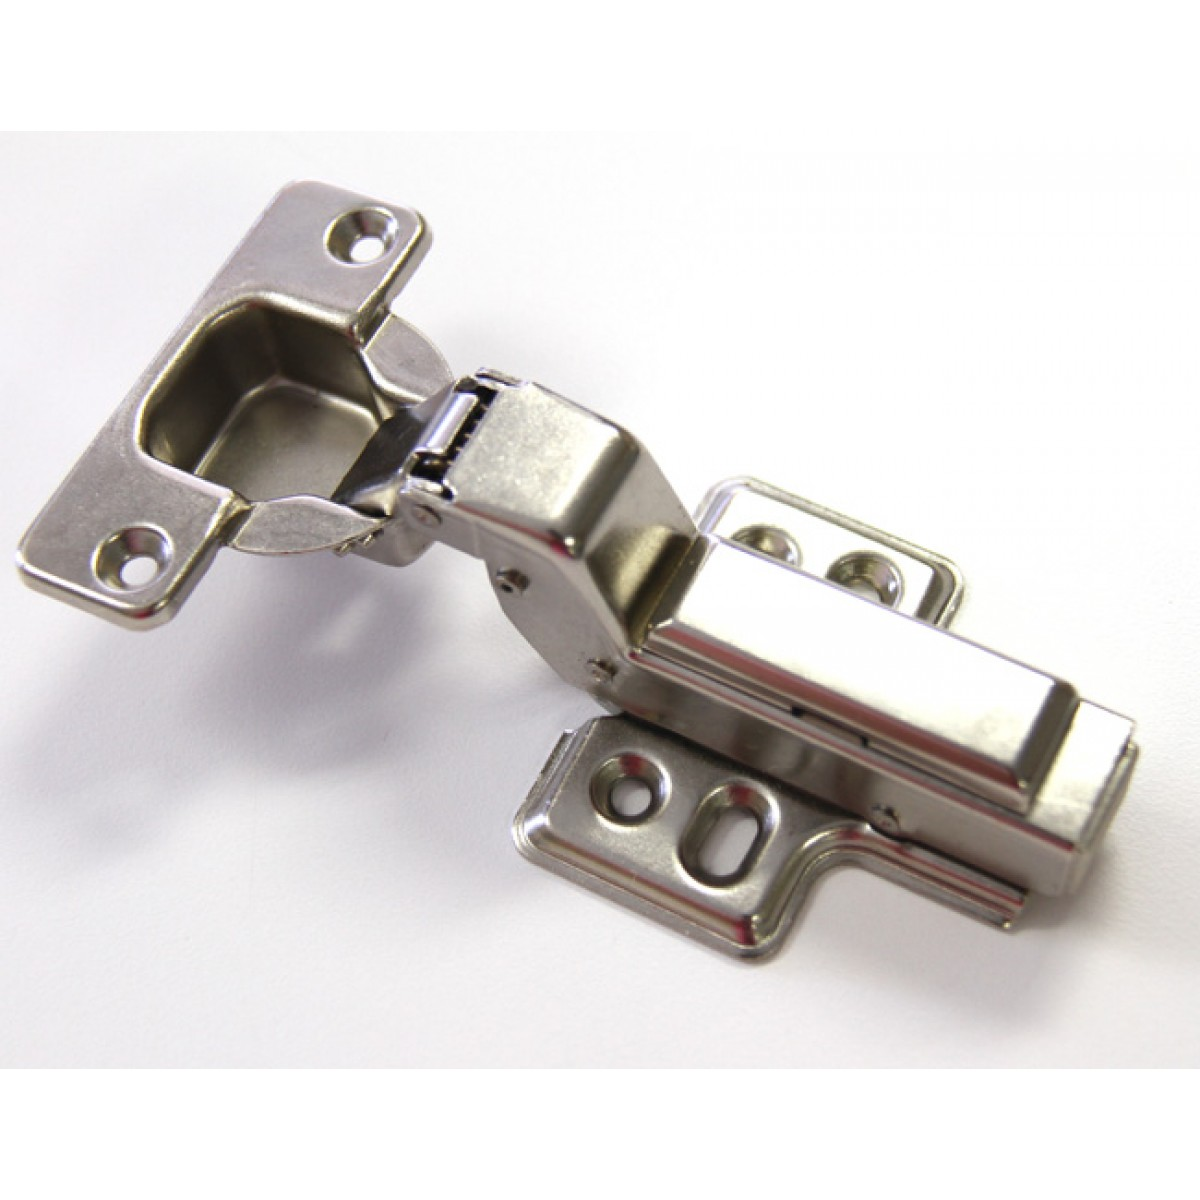 Hydraulic Hinges For Kitchen Cabinets European Cabinet Concealed Hydraulic Soft Close Inset